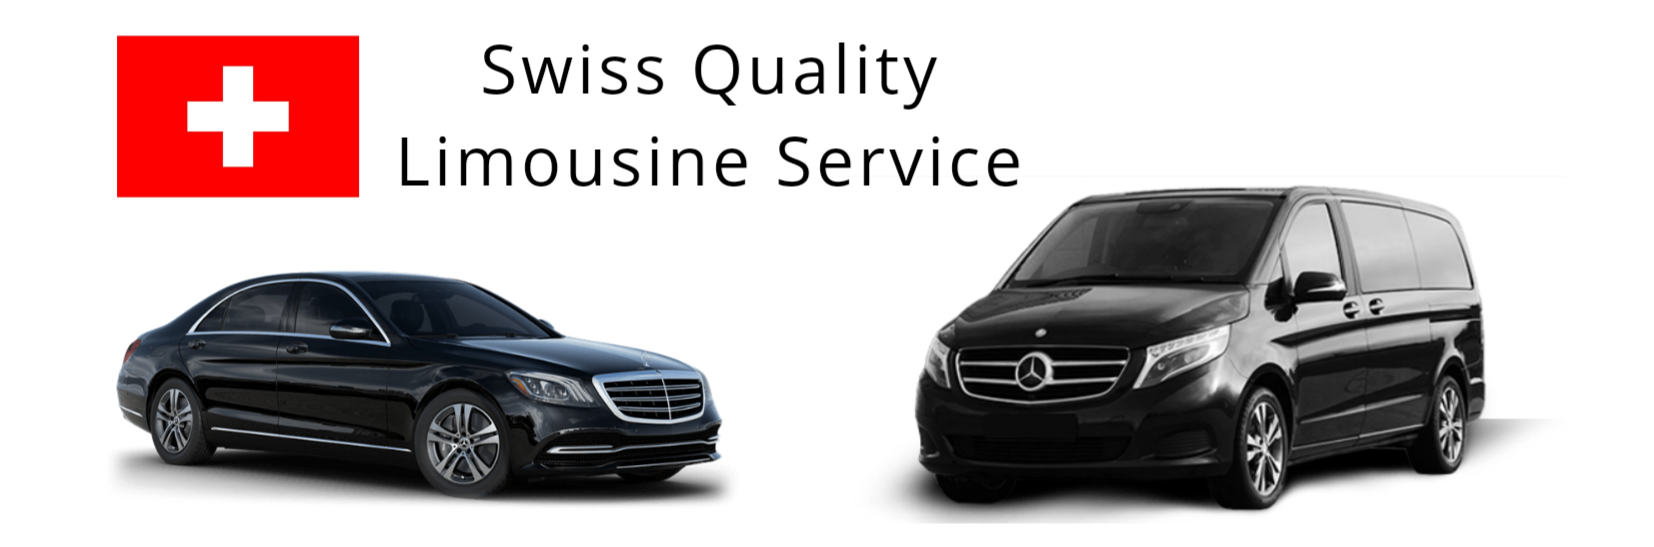 business e class sedan and a family van by mercedes in black